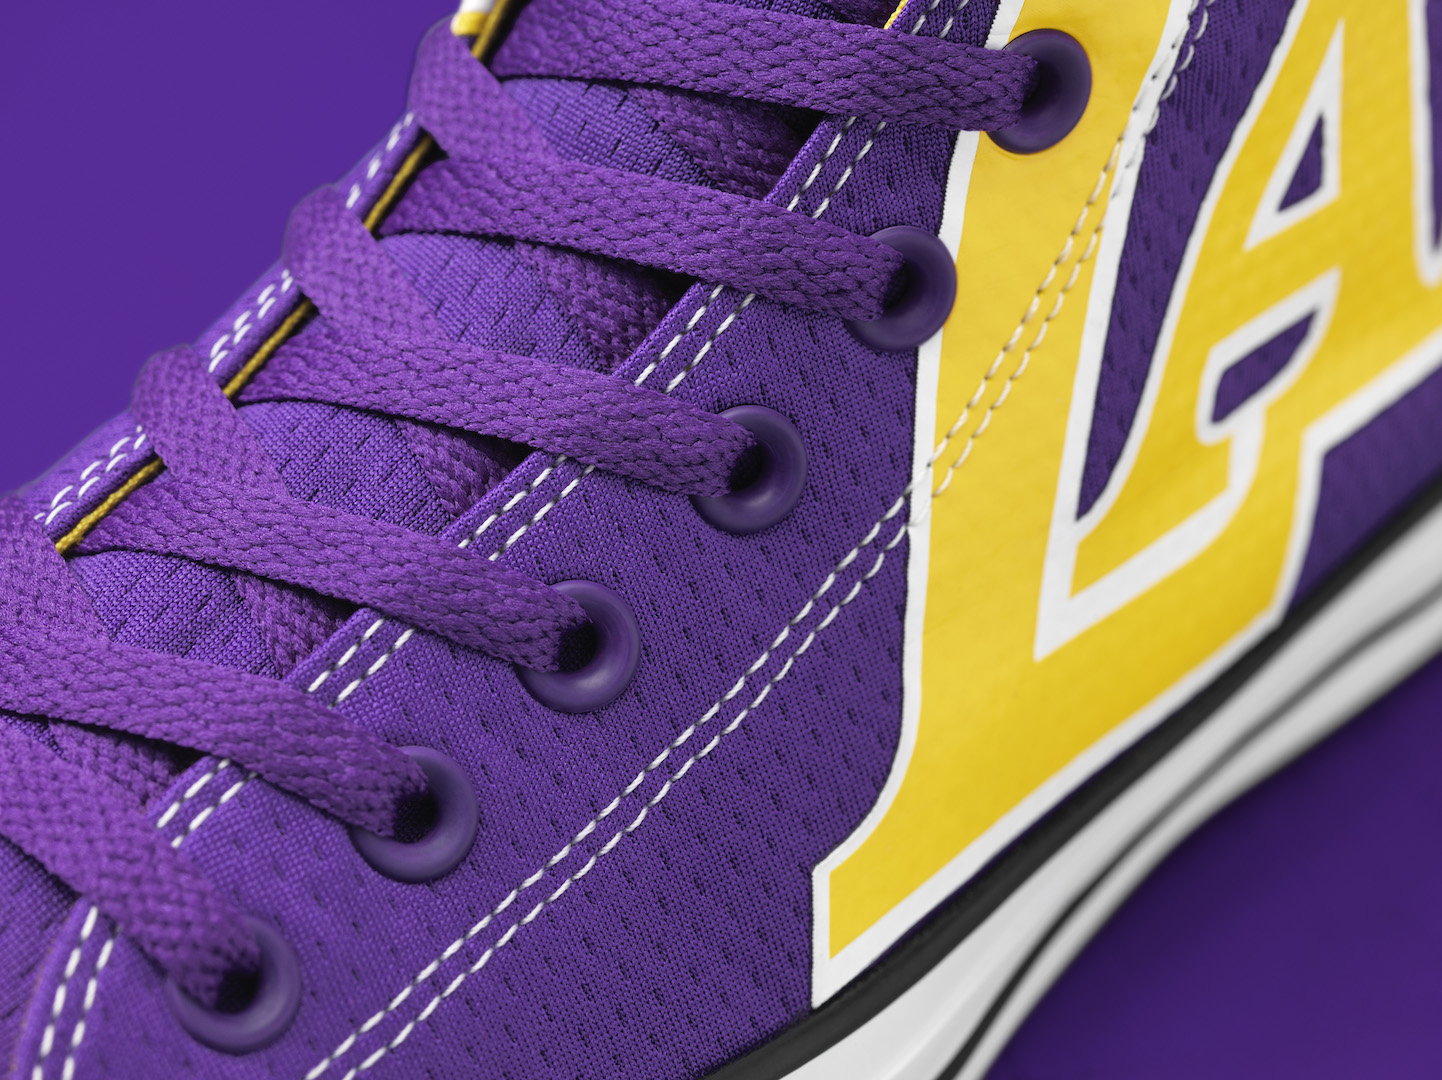 HO17_NBA_CTAS_SE_FRANCHISE_LOS_ANGELES_LAKERS_159427C_DETAIL_3_w2_RGB - Copy